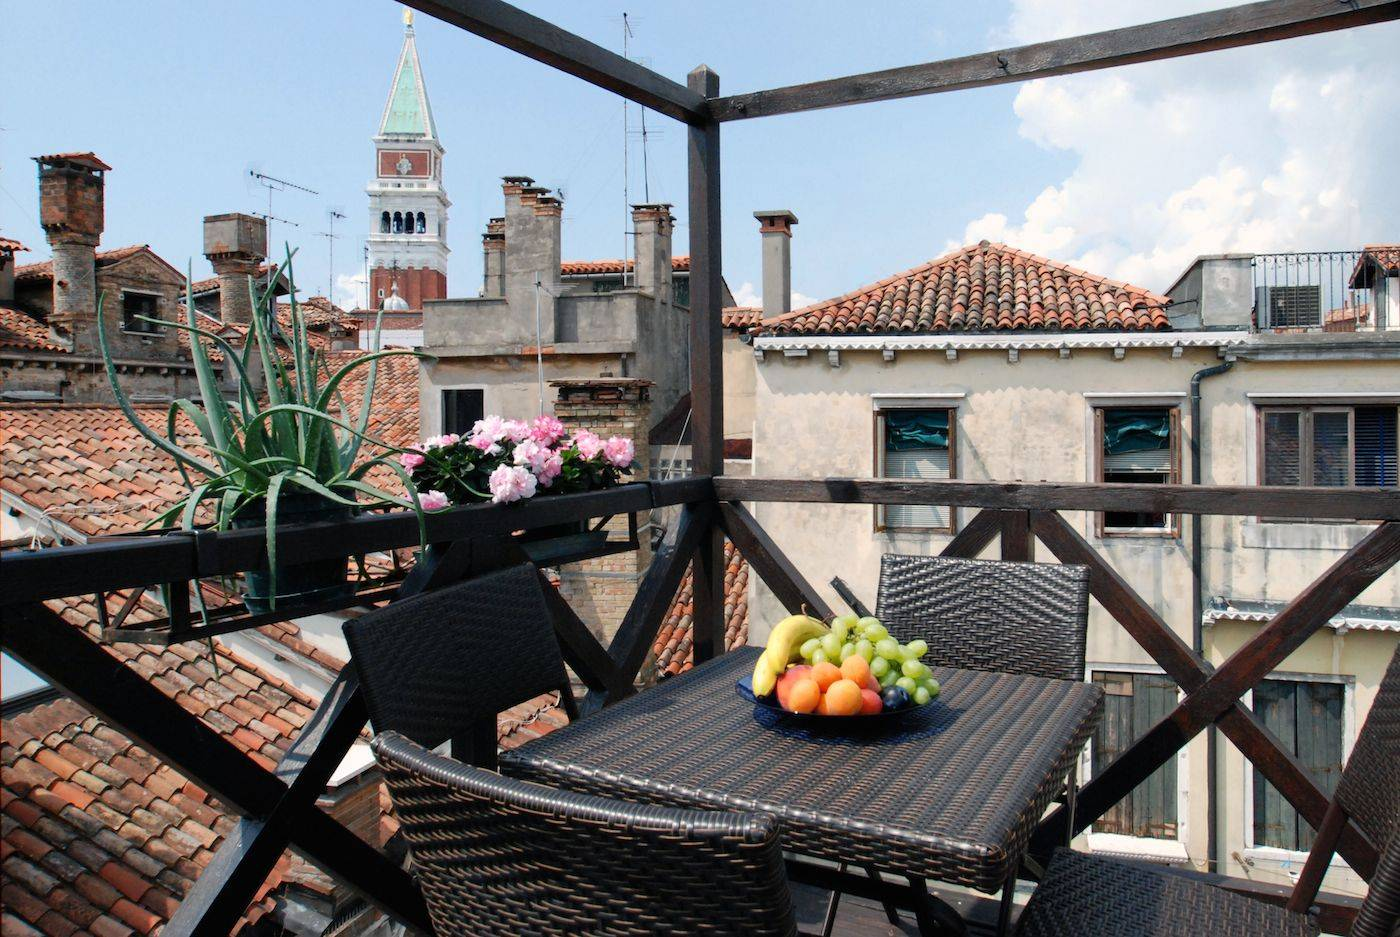 Altana San Marco roof-top terrace with pitoresque canal view